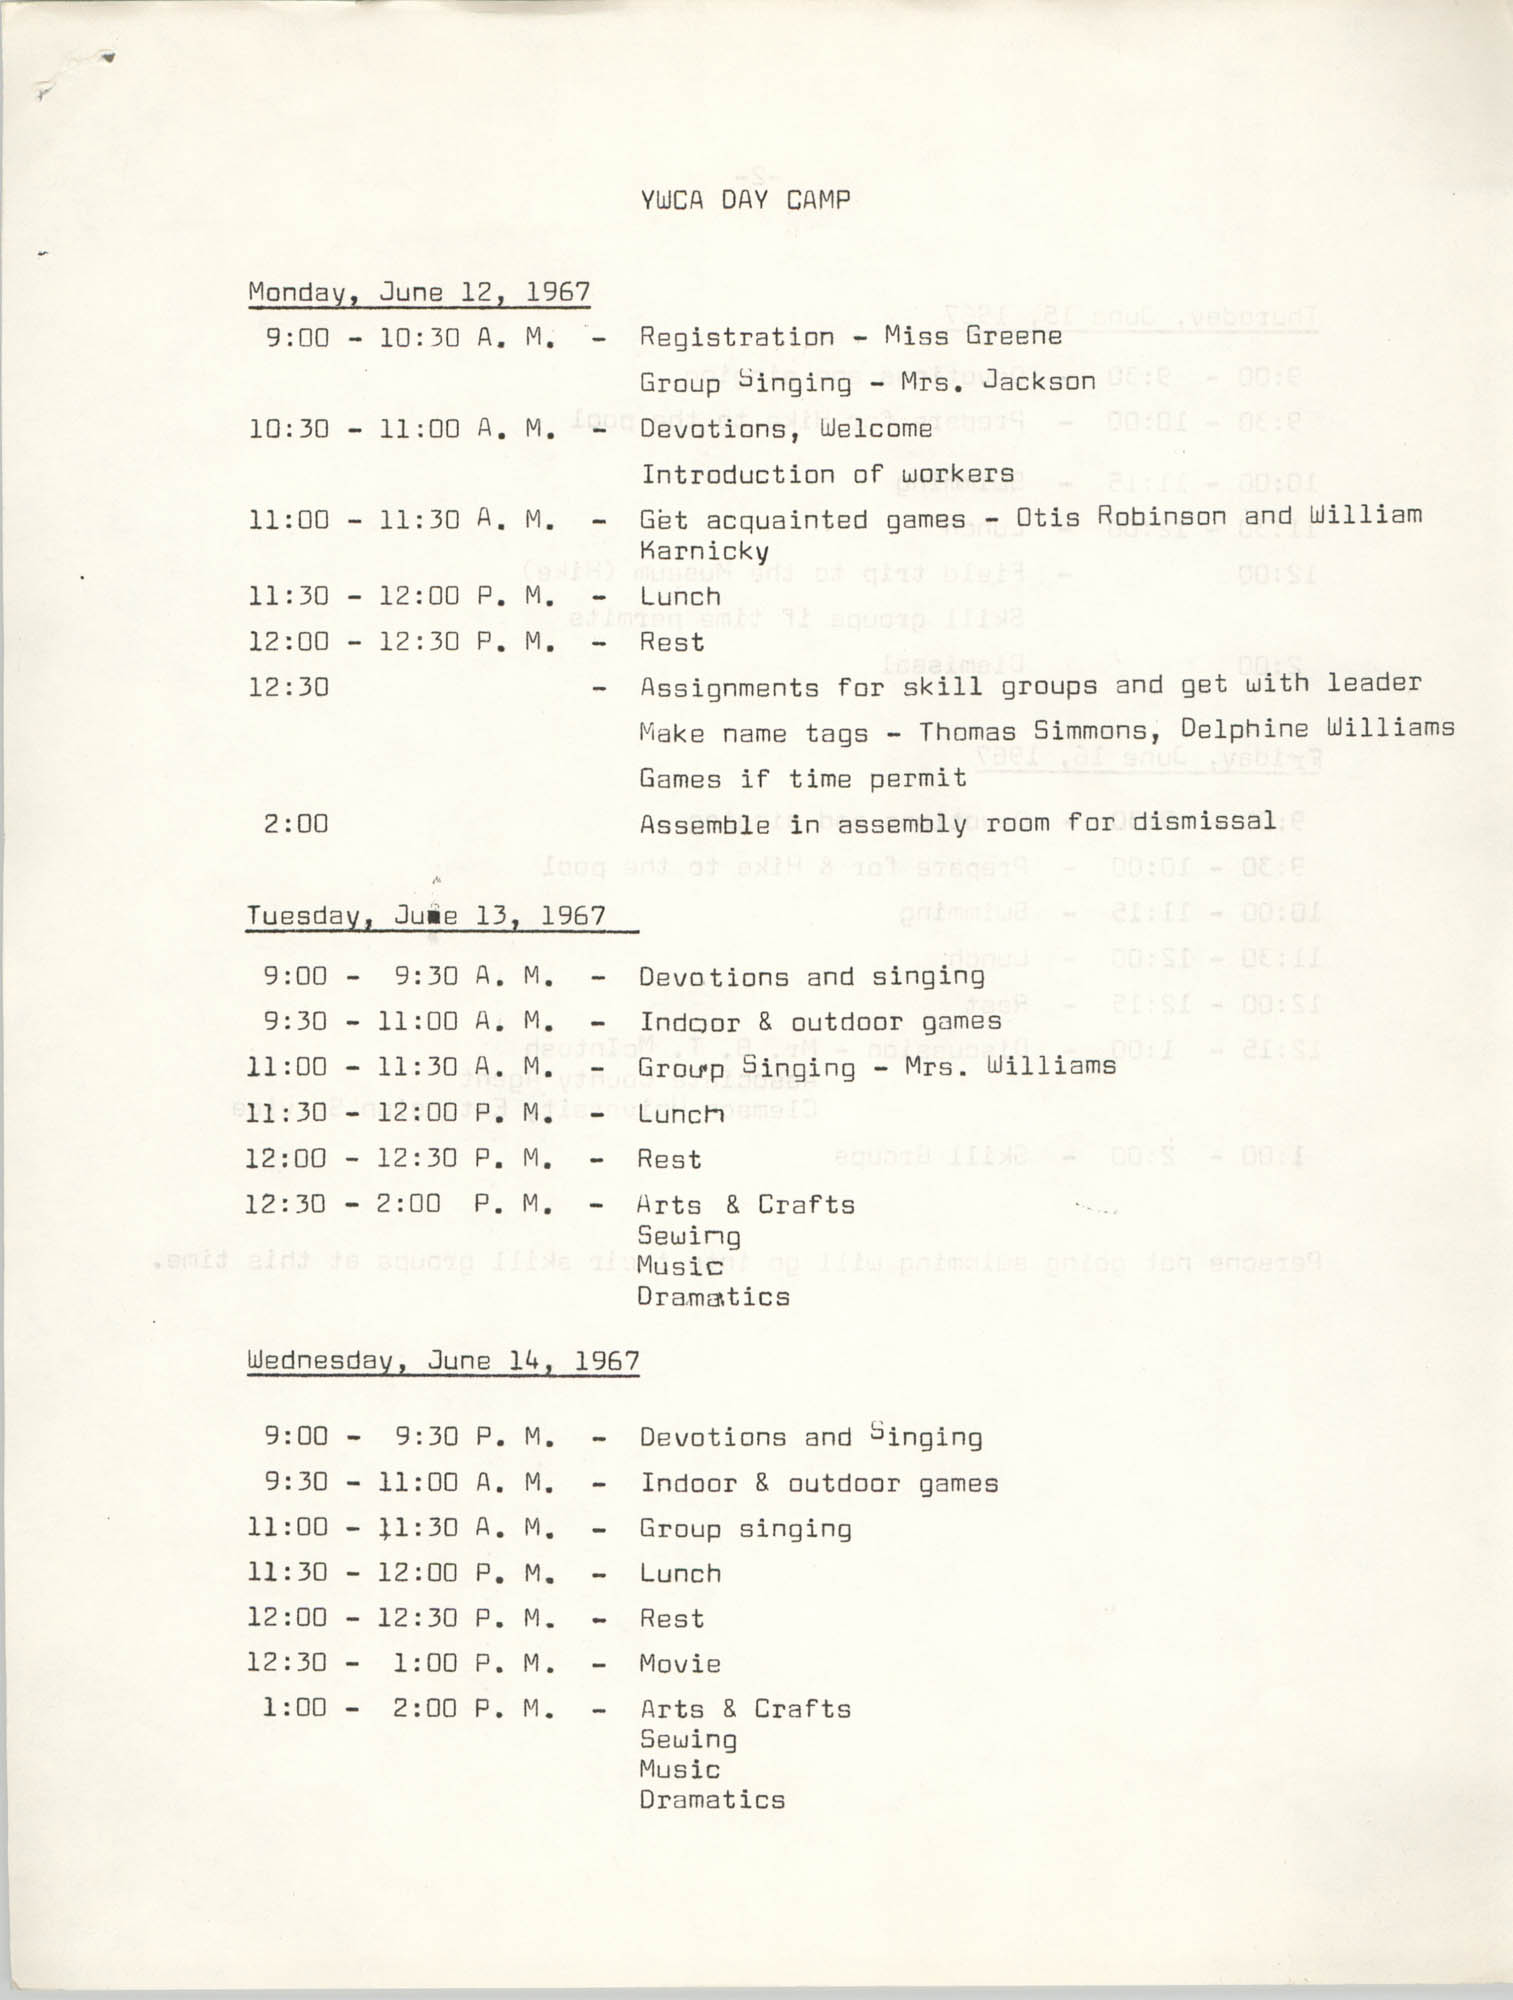 Coming Street Y.W.C.A. Day Camp, June 12-16, 1967, Page 1